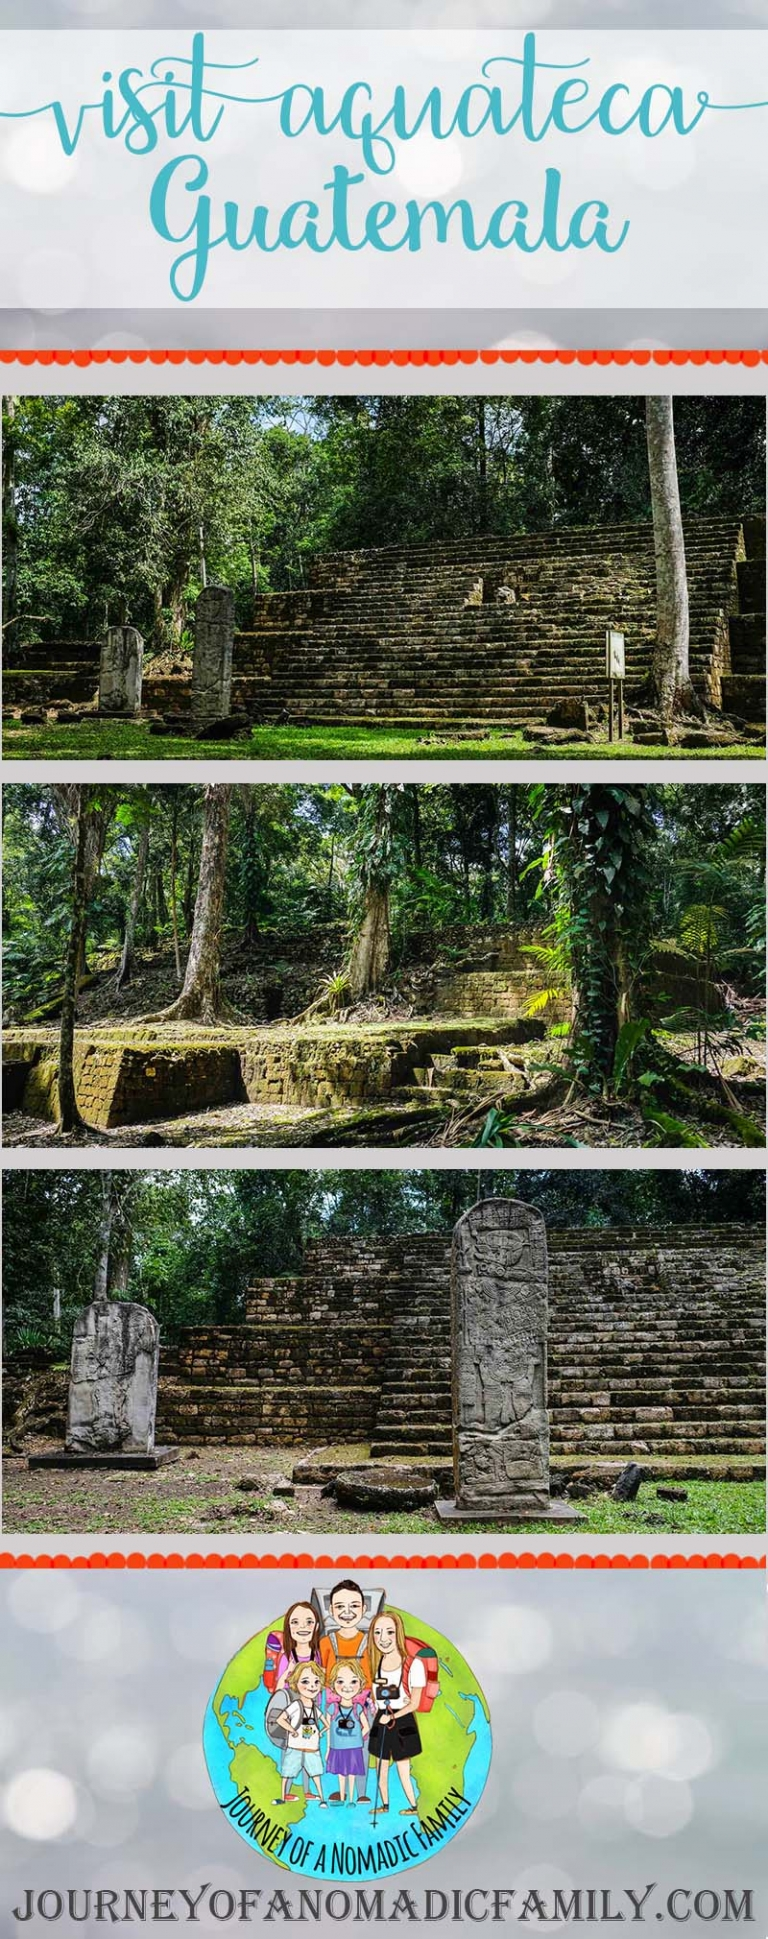 How to visit Aquateca ruins in Guatemala